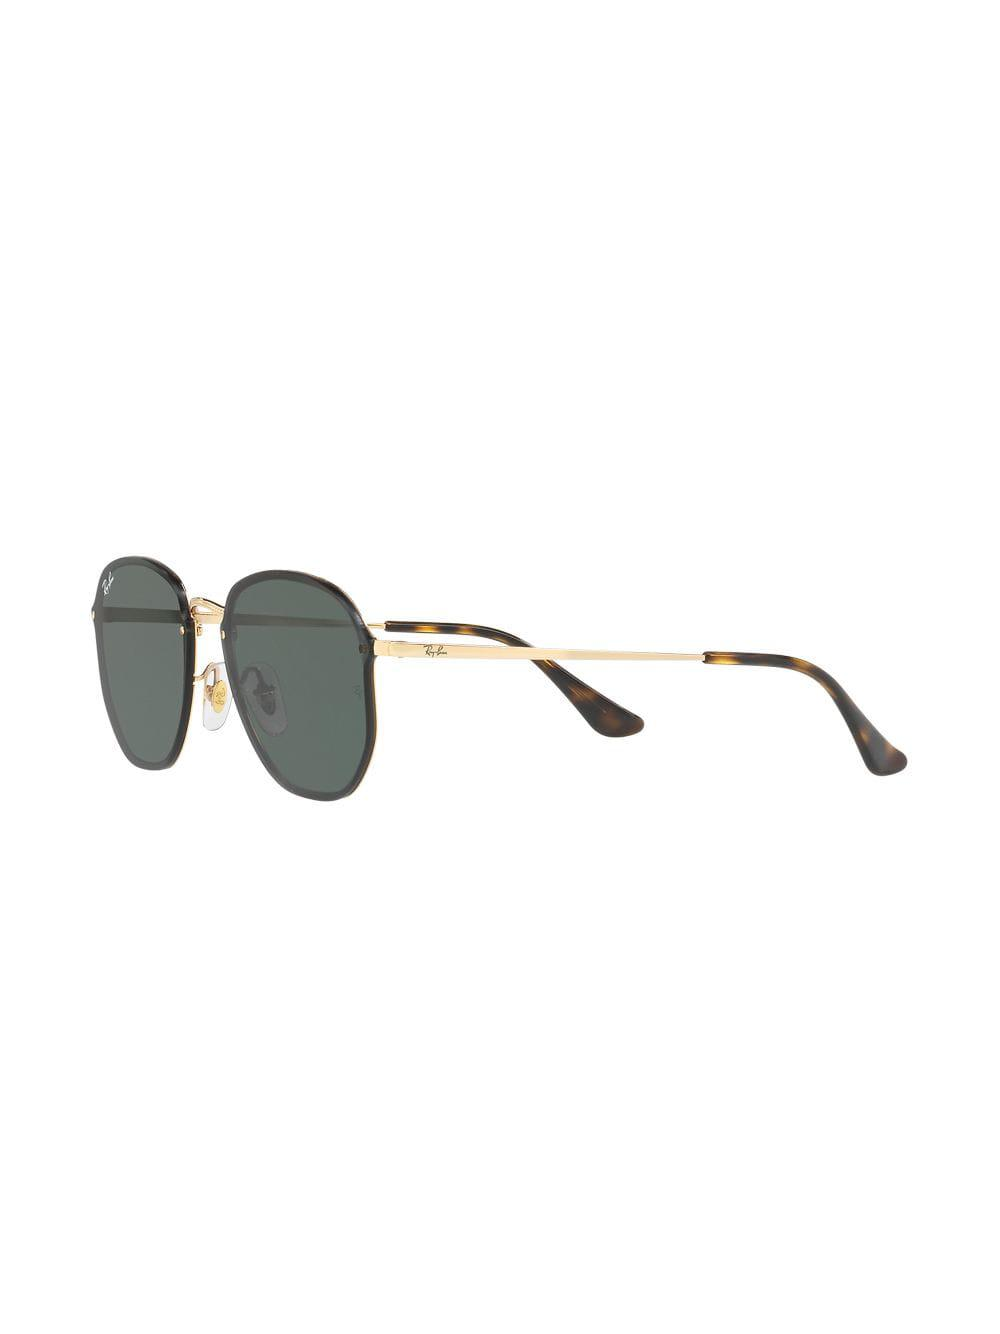 387a6a29f8 Ray-Ban - Metallic Blaze Hexagonal Sunglasses - Lyst. View fullscreen